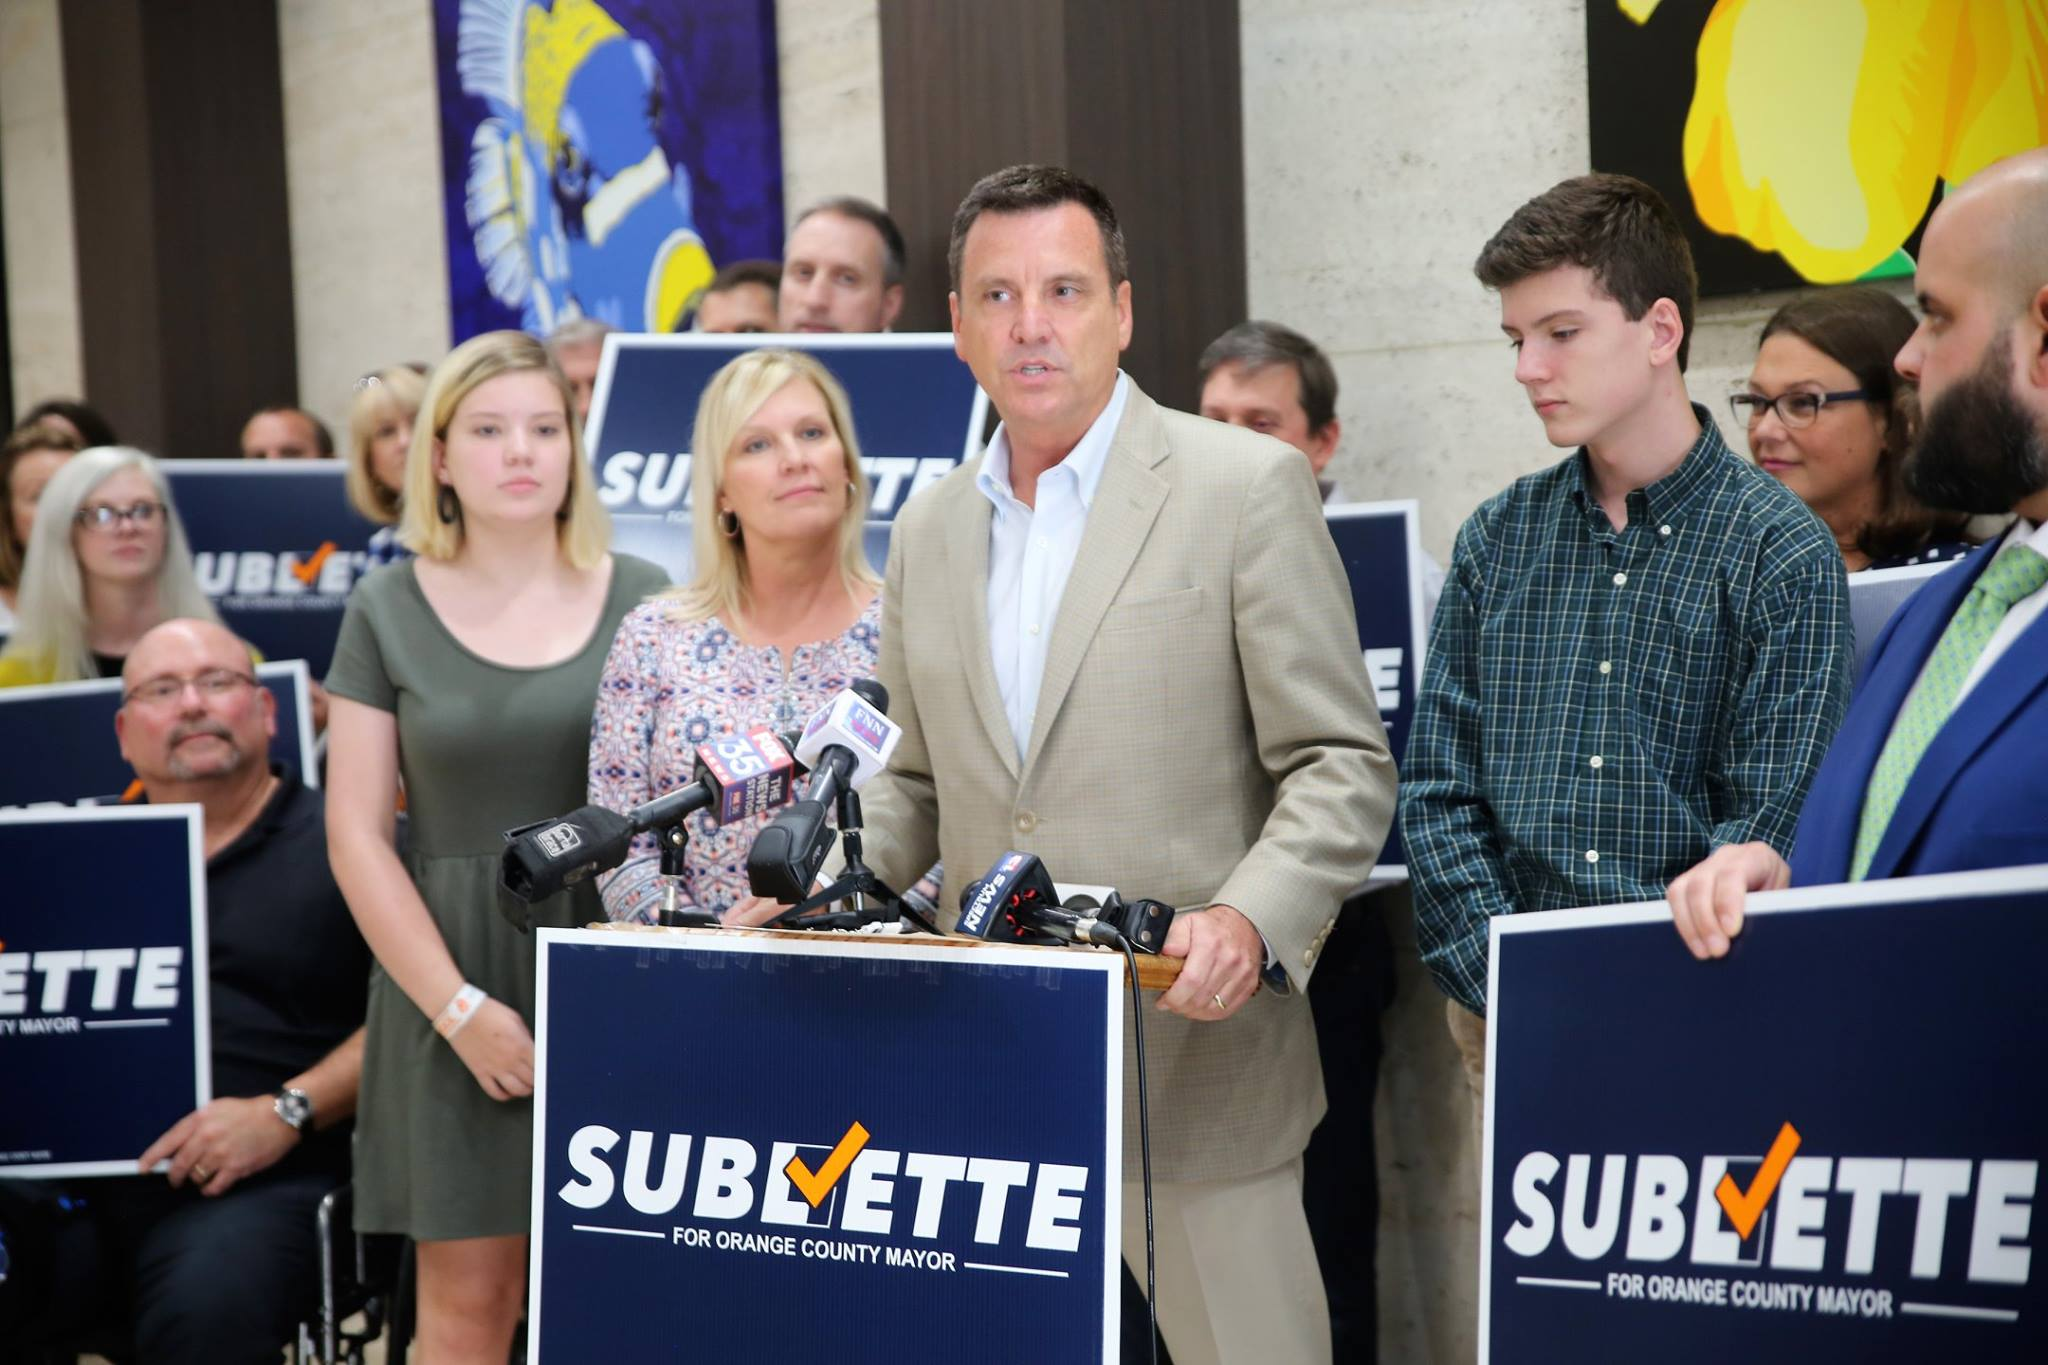 ORLANDO (FNN NEWS) - Orange County School Board Chairman Bill Sublette announced his candidacy for county mayor in a press conference in downtown Orlando Monday. Photo: Willie David/Florida National News.